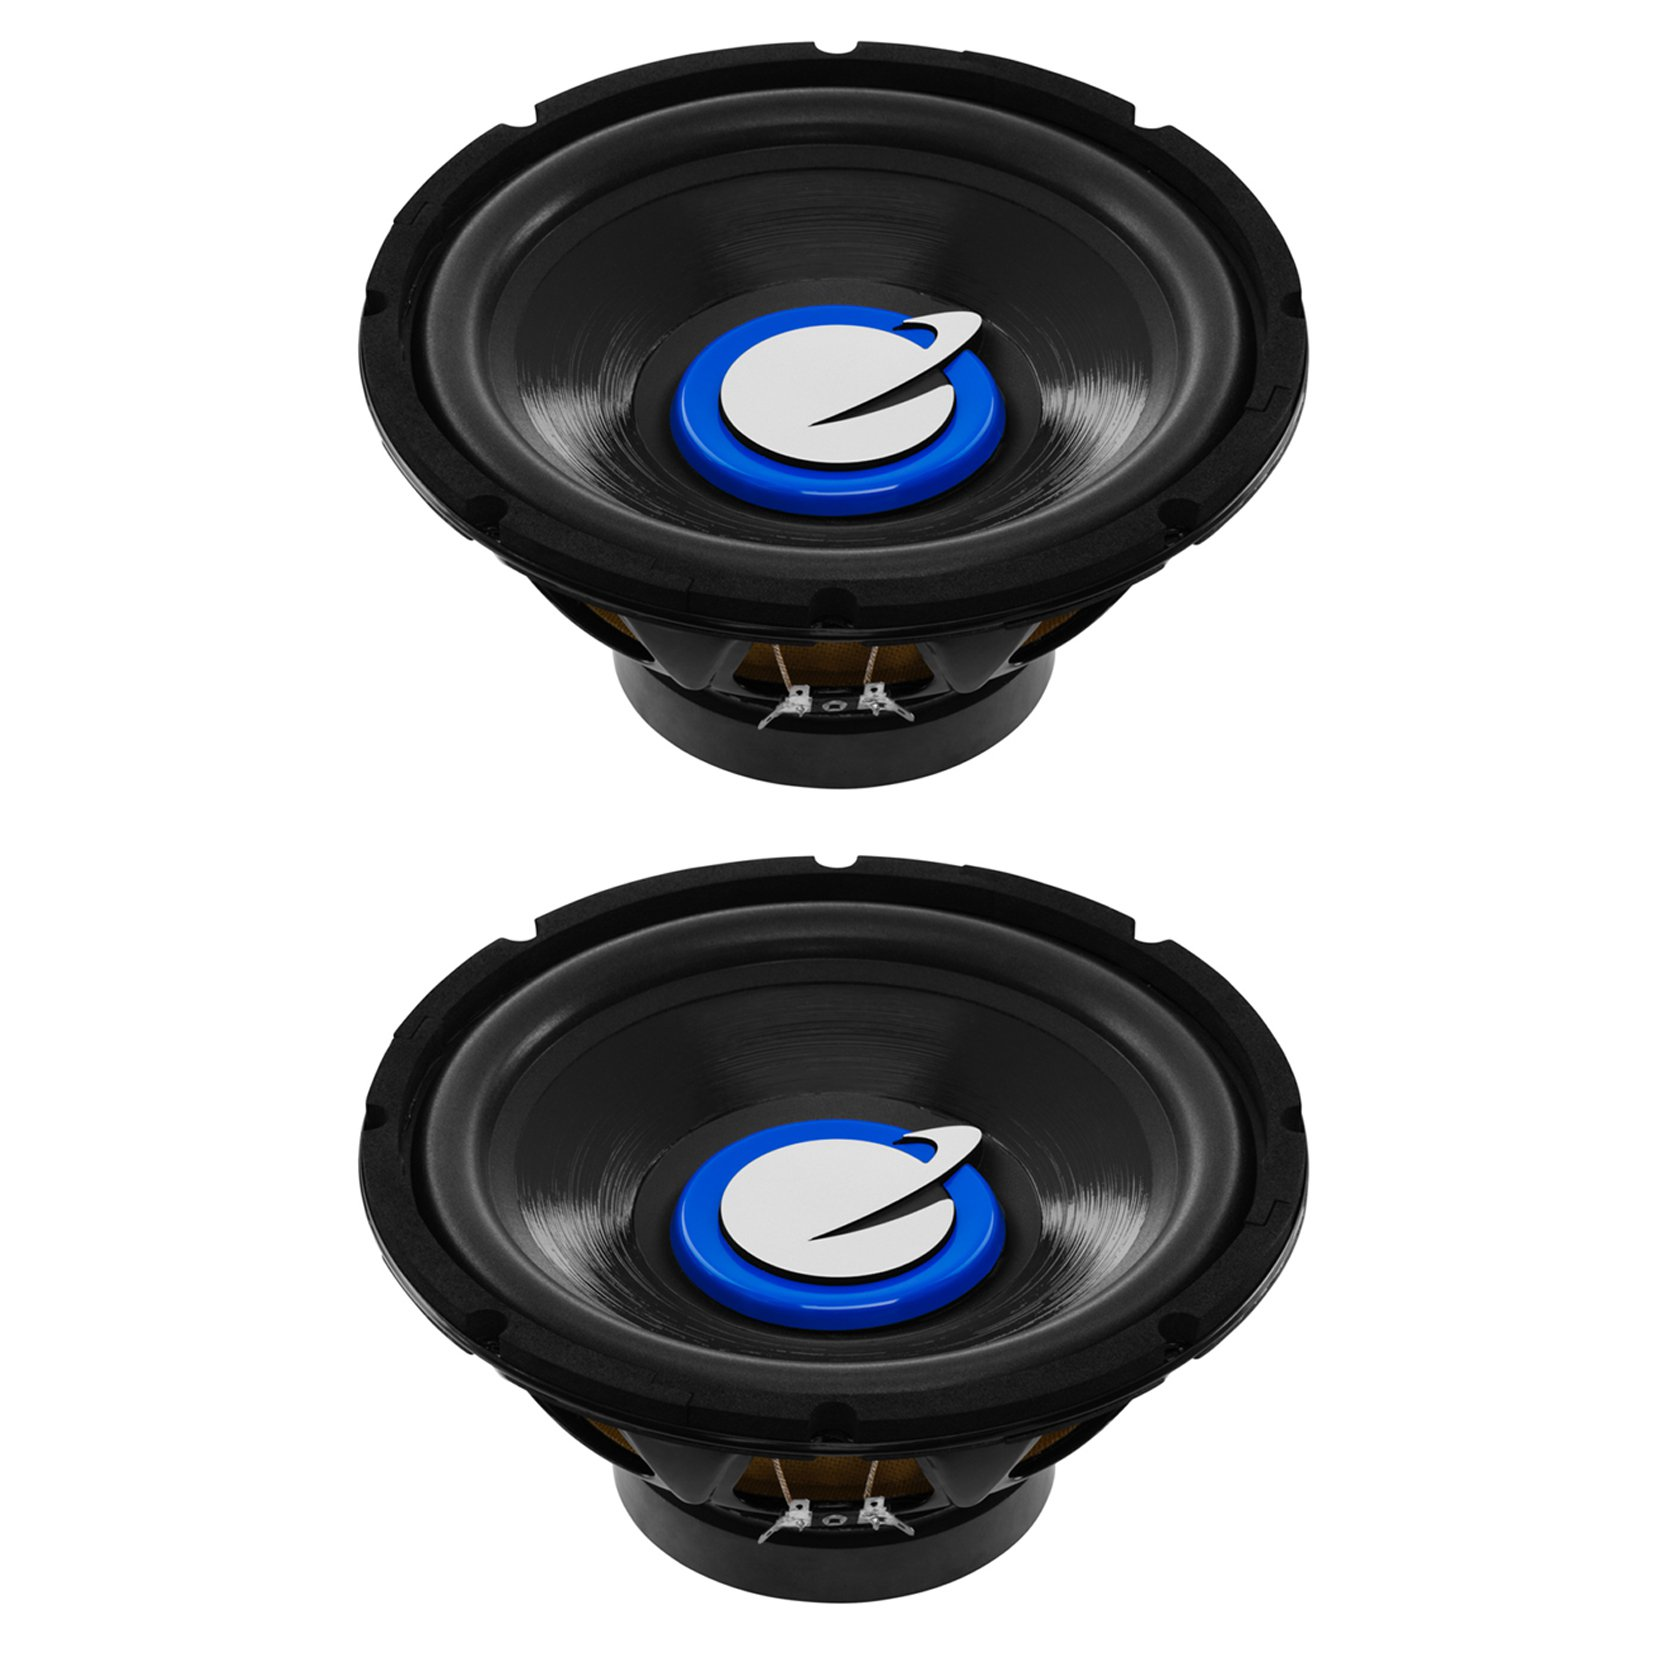 Planet Audio Torque TQ10S 10 Inch 1200 Watt 4 Ohm Car Audio Subwoofer (2 Pack)